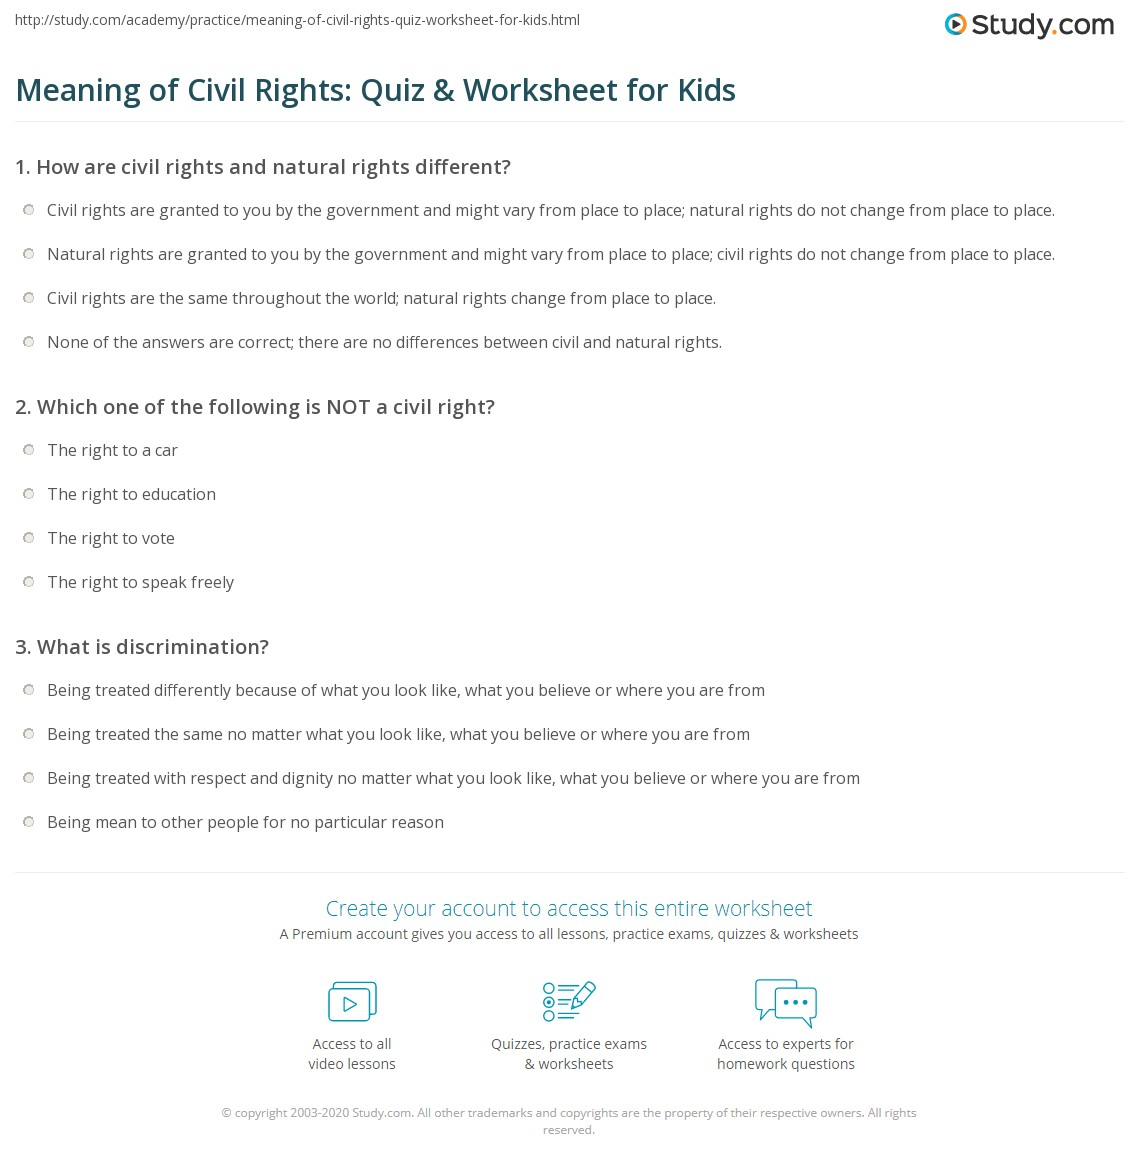 meaning of civil rights: quiz & worksheet for kids | study